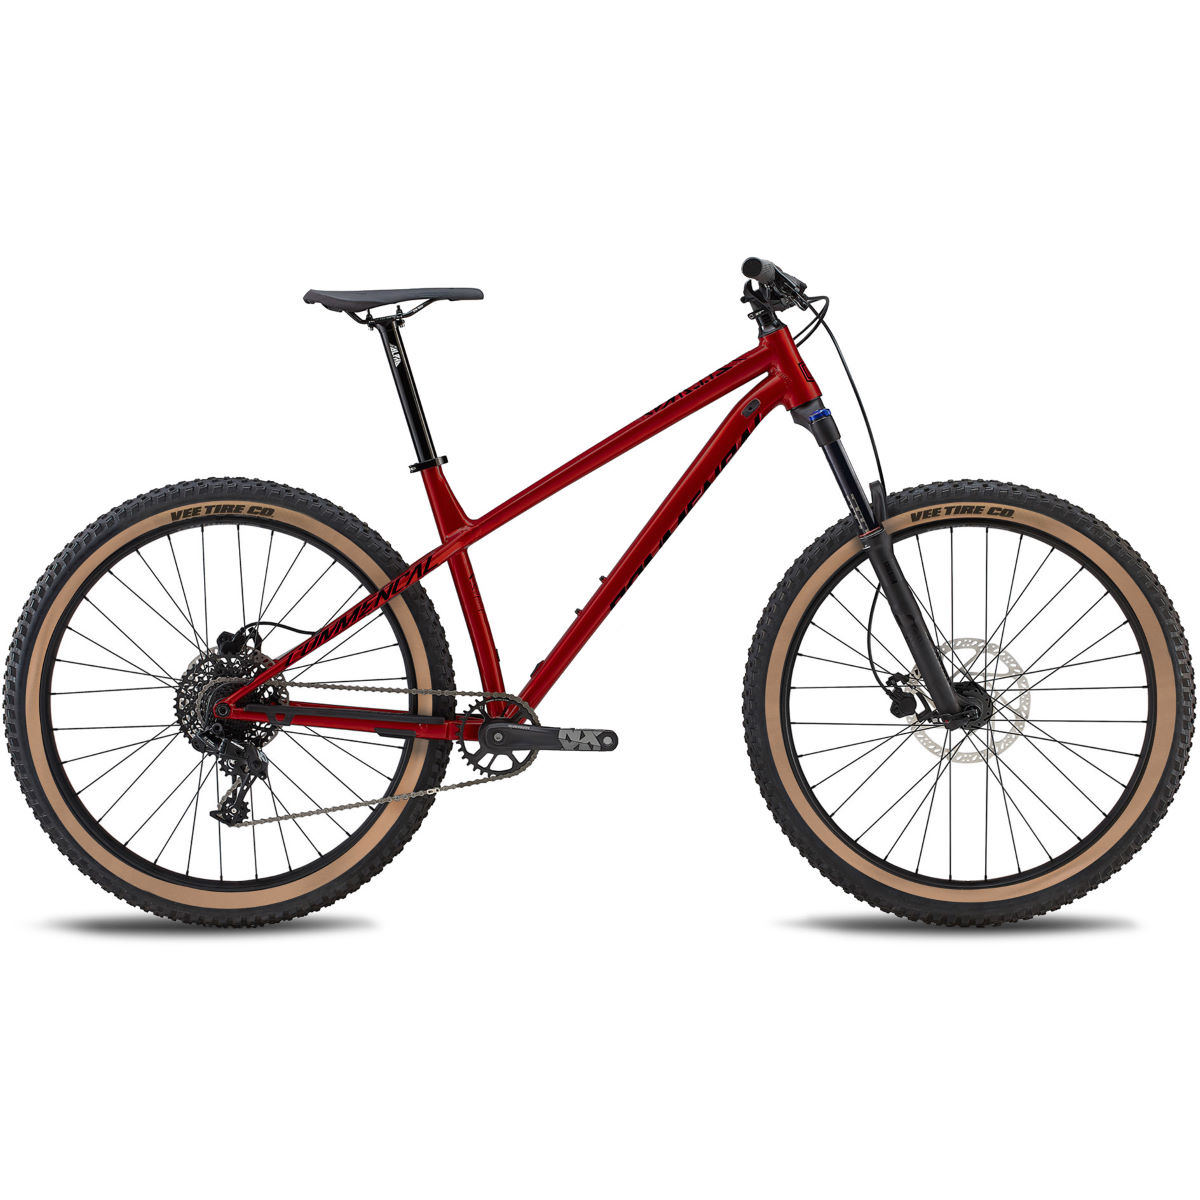 Commencal Meta HT AM Origin (2019) Bike - Bicicletas de MTB rígidas